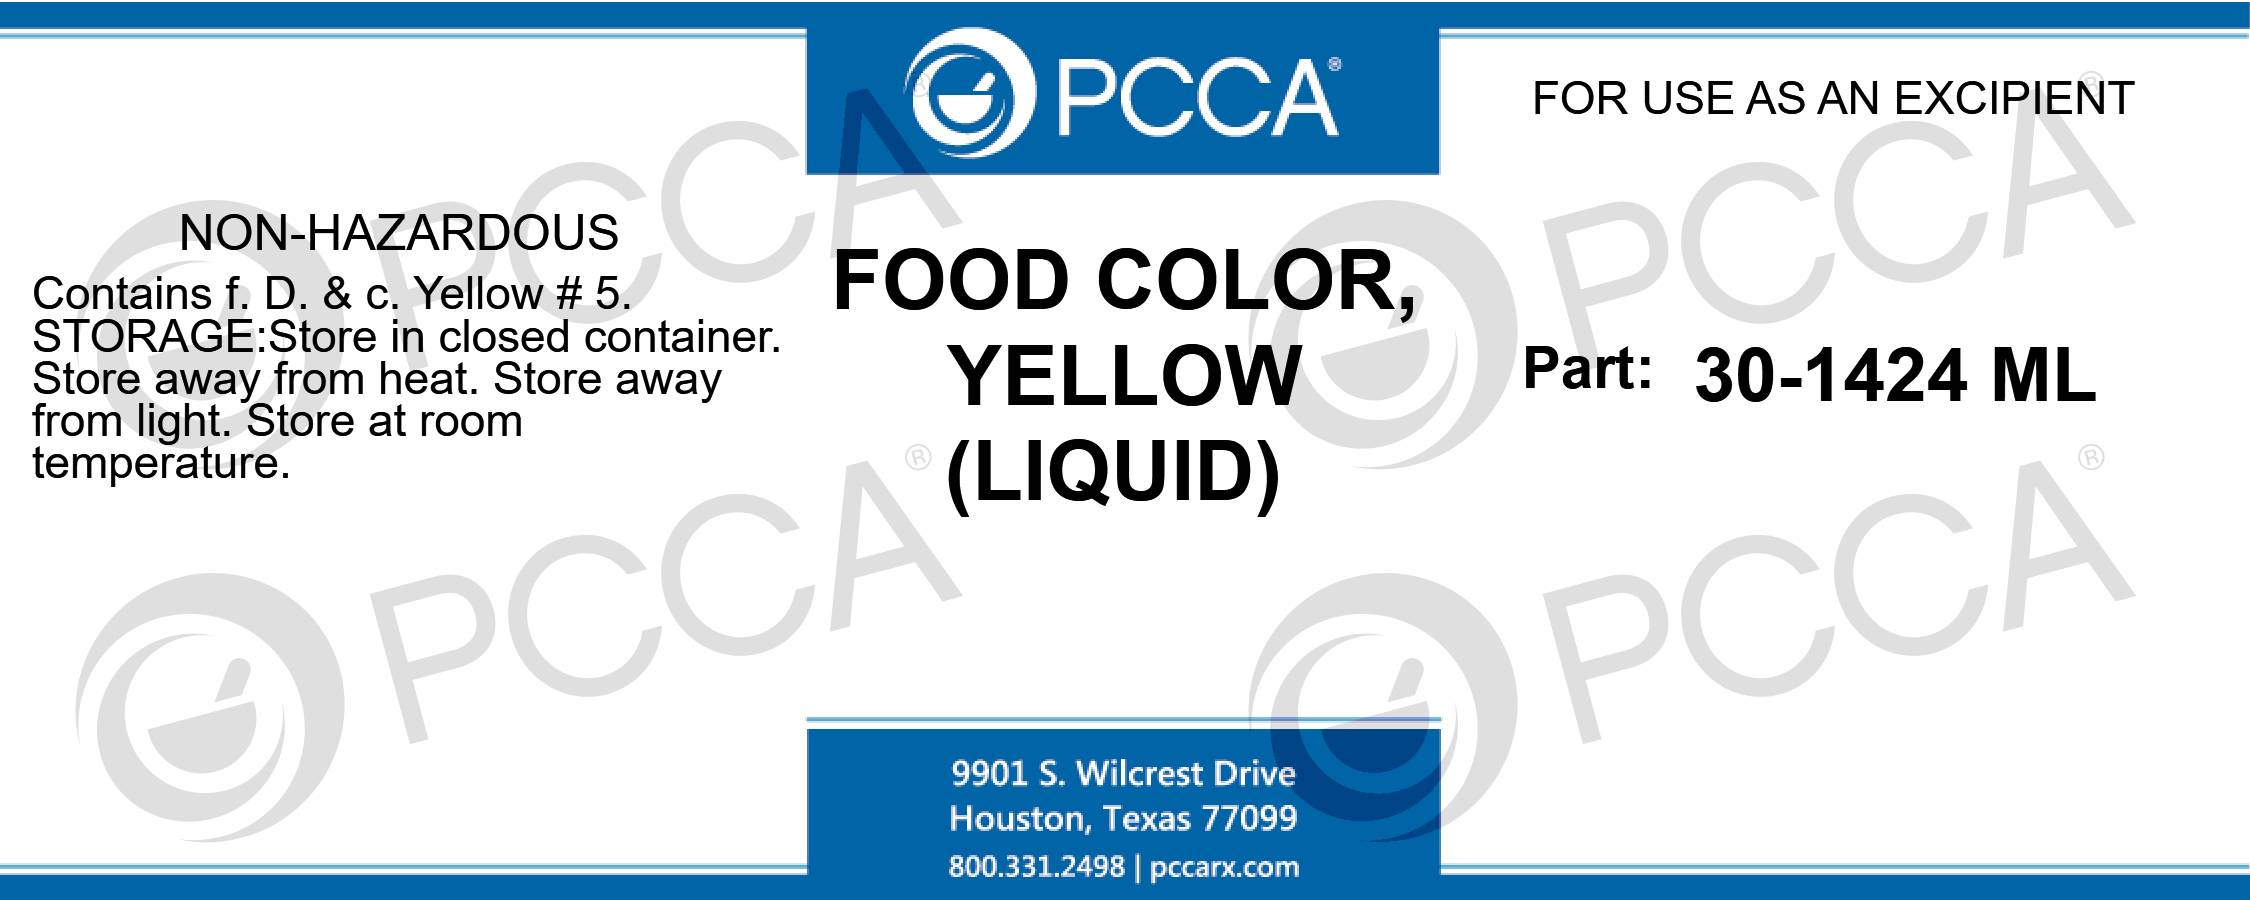 FOOD COLOR, YELLOW (LIQUID) - PCCA